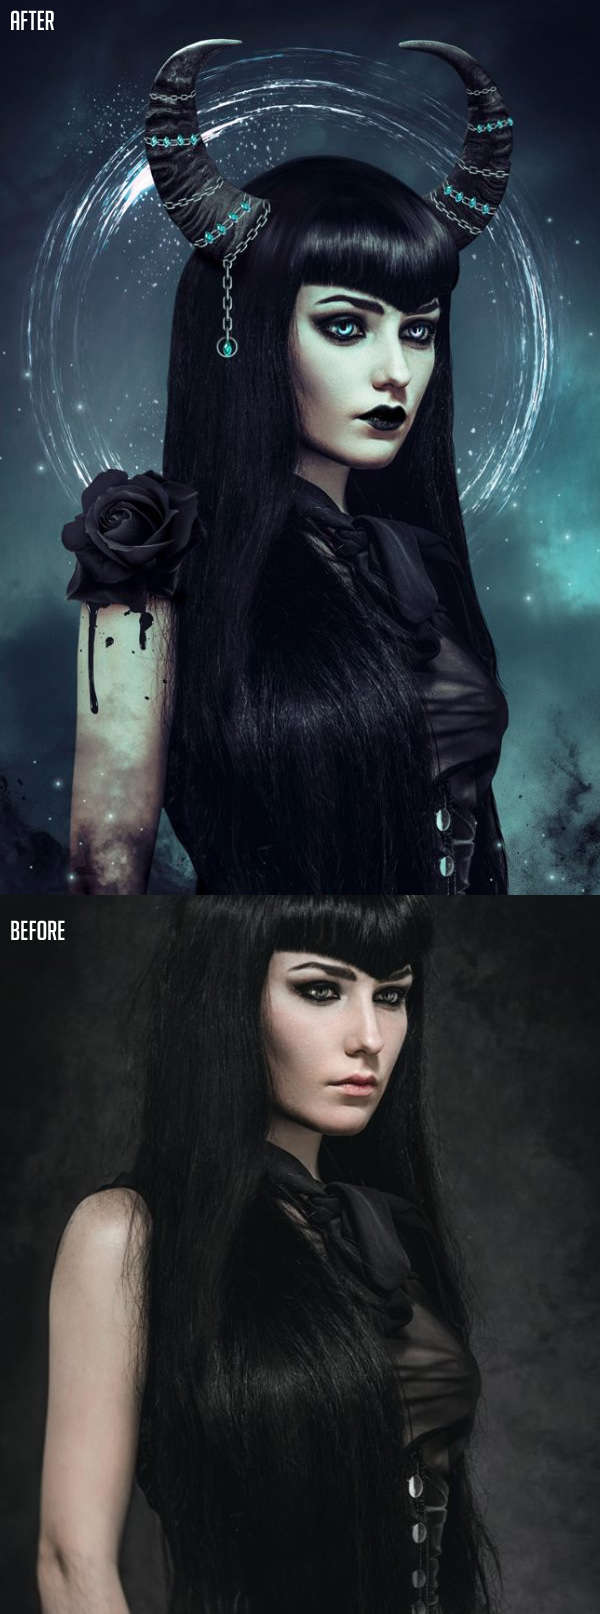 How to Create a Dark Photo Manipulation in Photoshop Tutorial